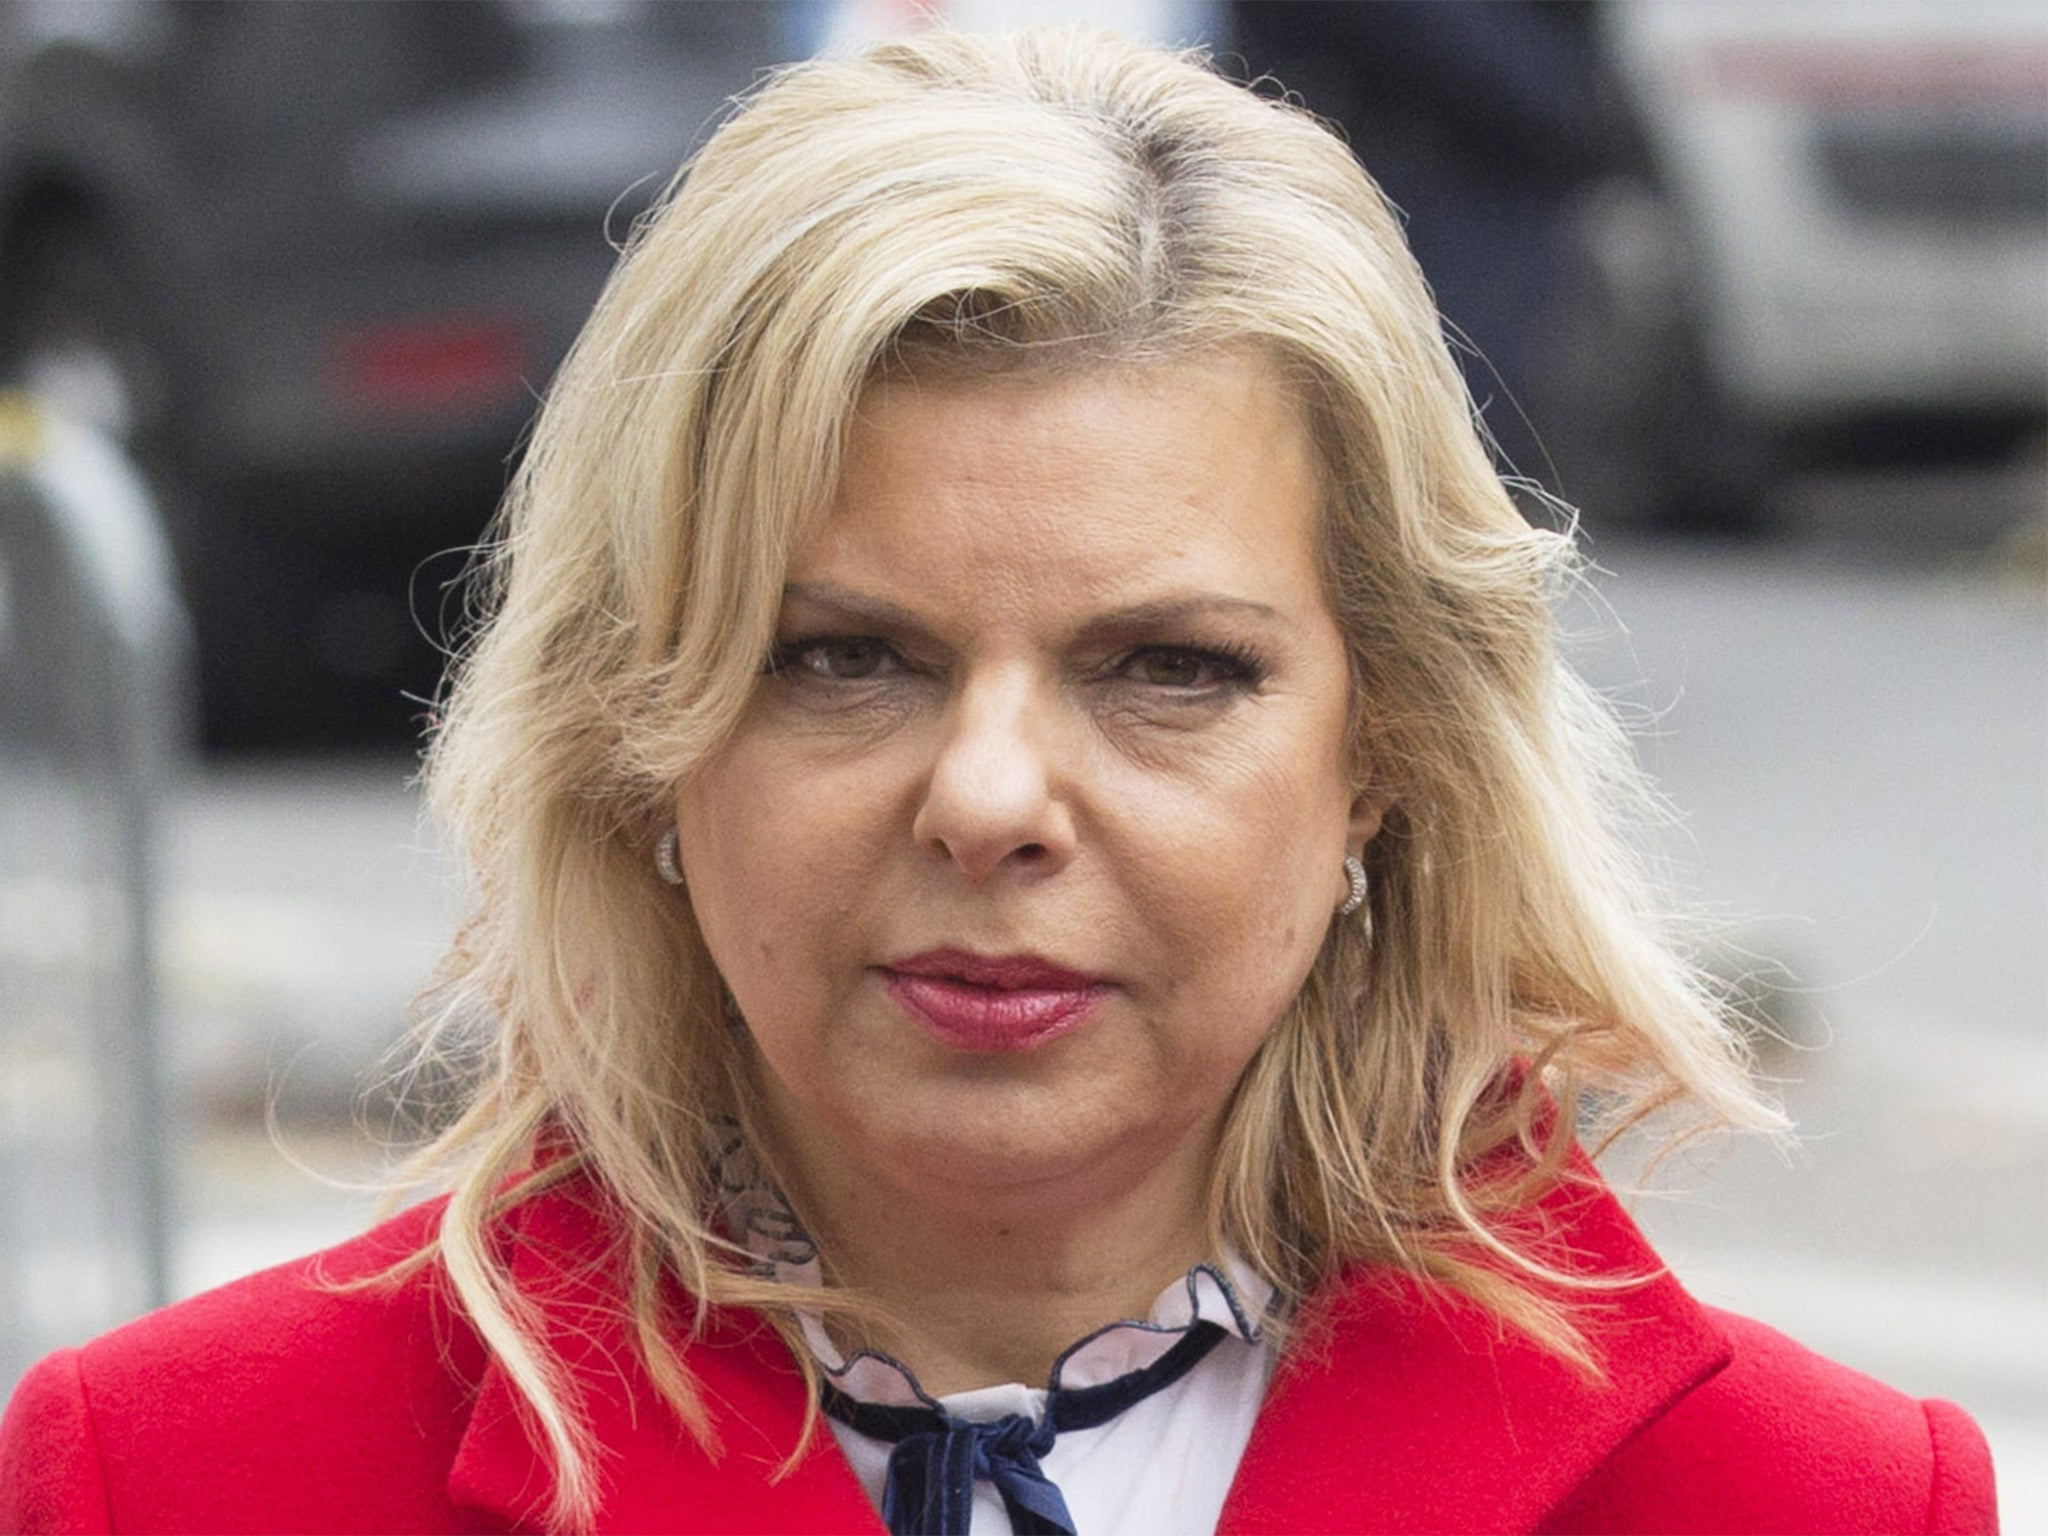 Sara Netanyahu: Wife of Israeli leader reaches plea deal in corruption case